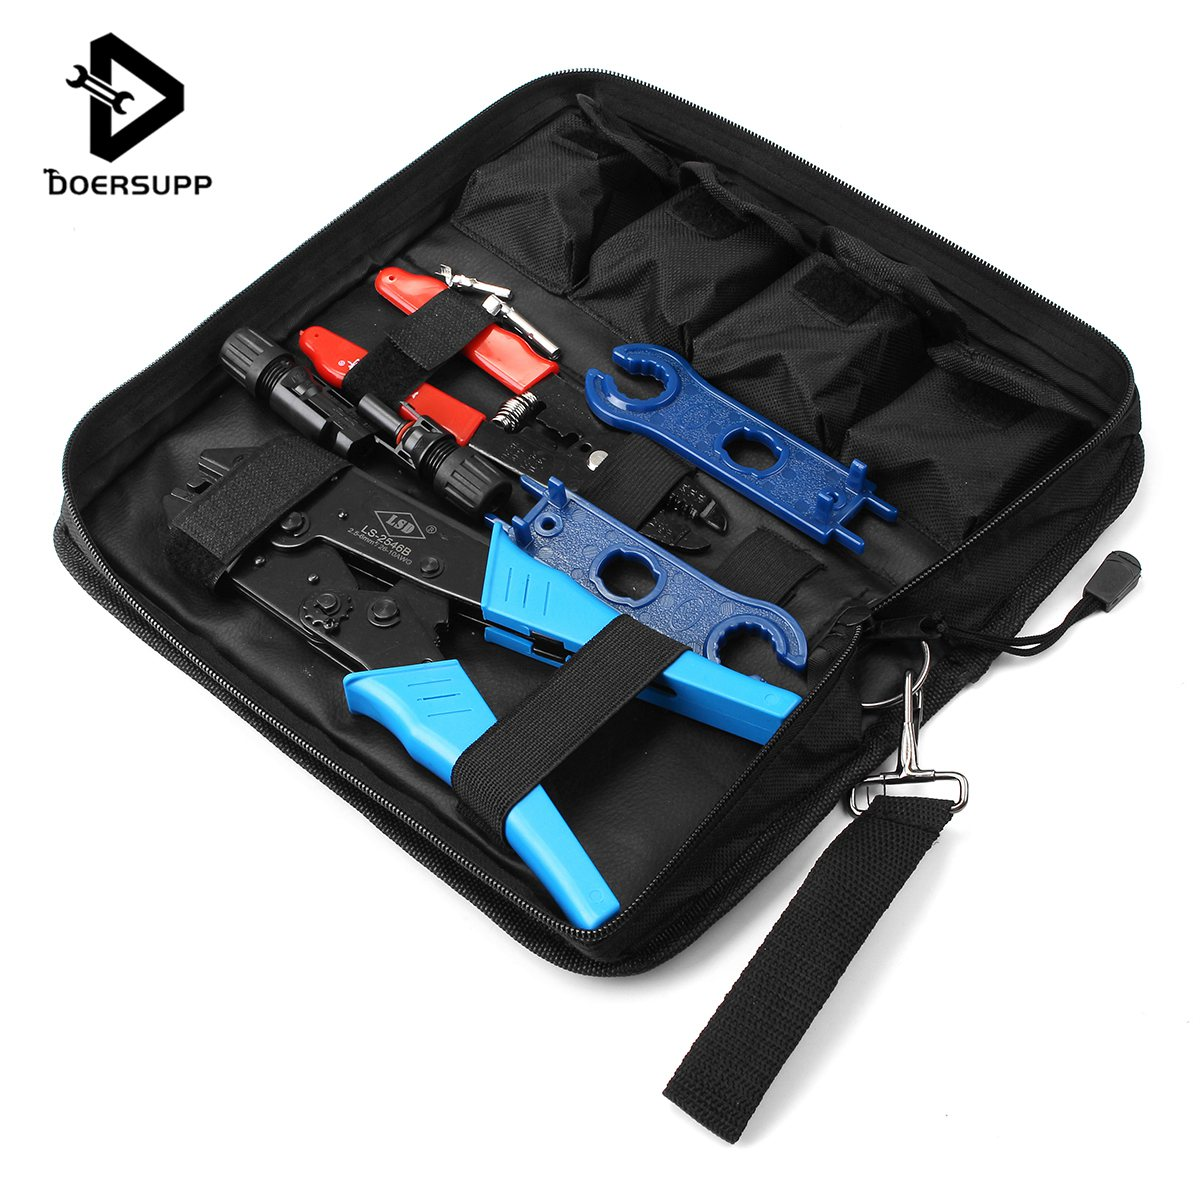 Doersupp MC4 Solar Panel Cable Crimper Connector Crimping Tool Ratcheting Pliers Set High Quality Tool SetsDoersupp MC4 Solar Panel Cable Crimper Connector Crimping Tool Ratcheting Pliers Set High Quality Tool Sets